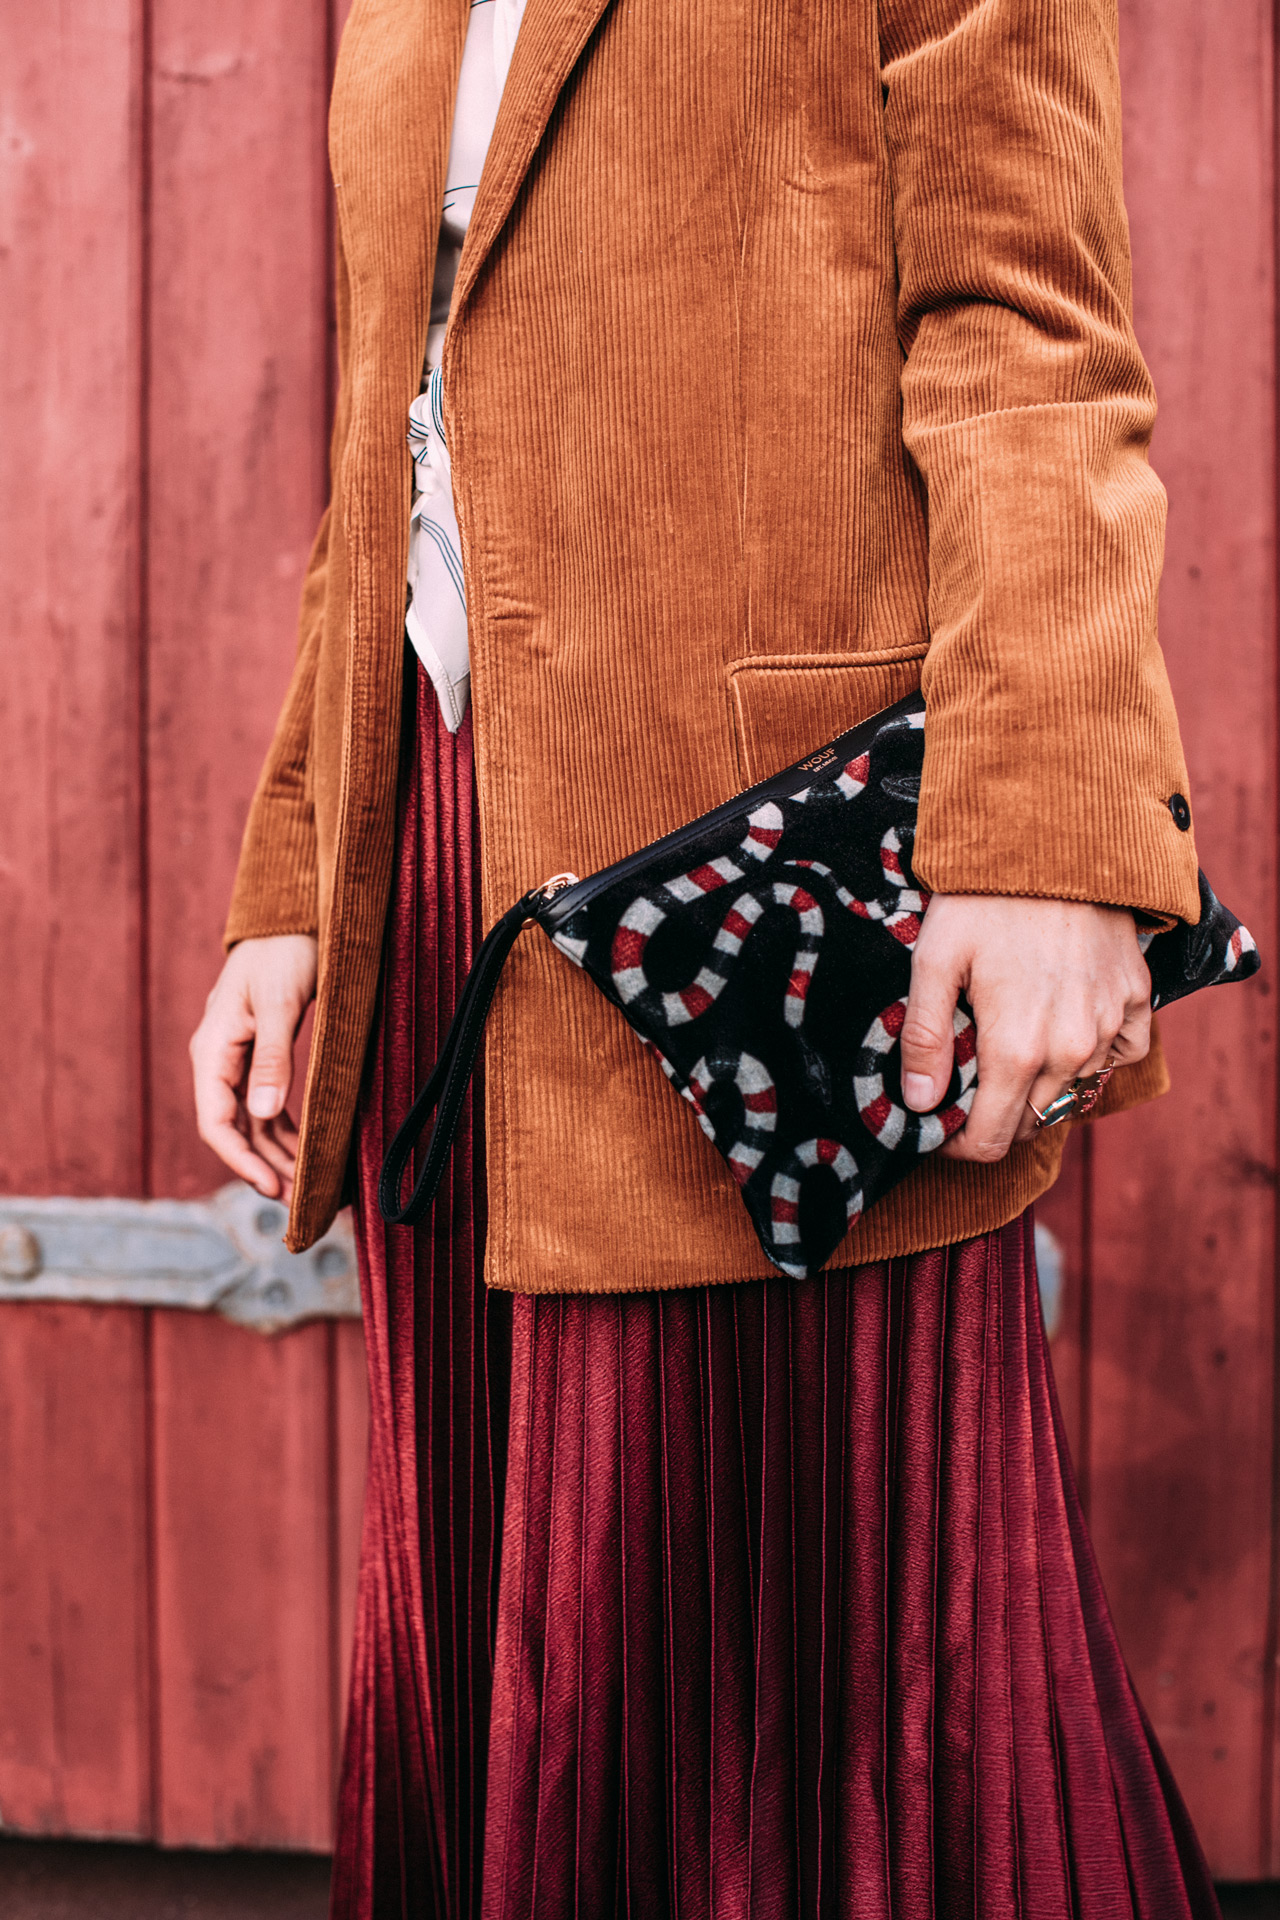 Coral-Snakes-velvet-night-clutch-bag-wouf